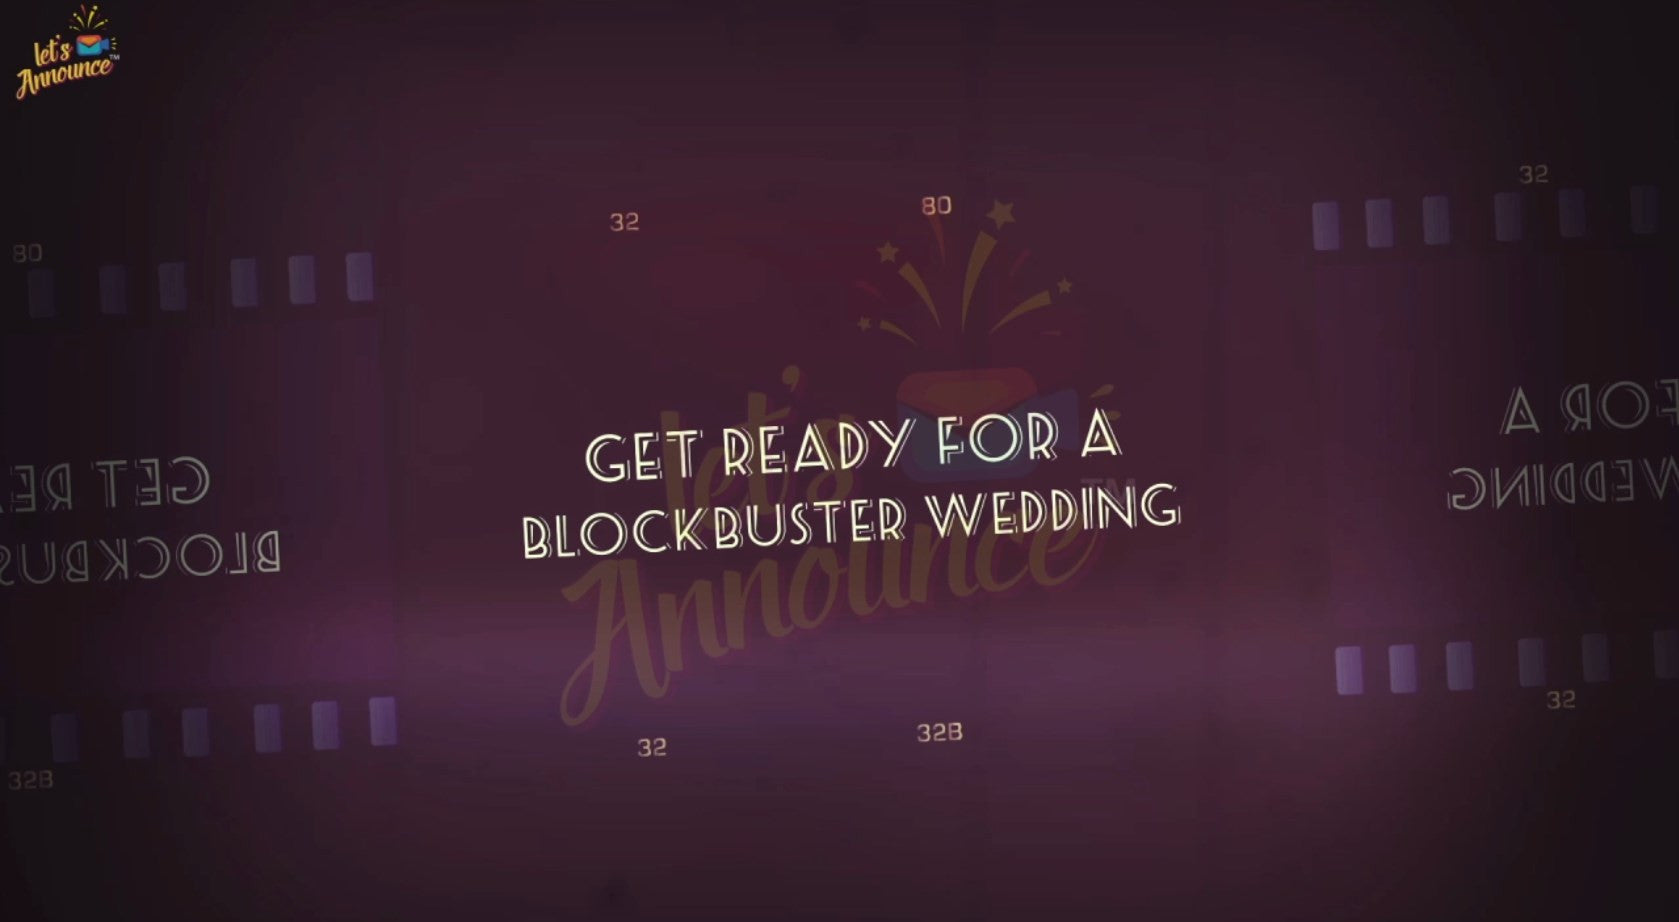 Blockbuster Wedding Invite - 30 sec (USD 35$)